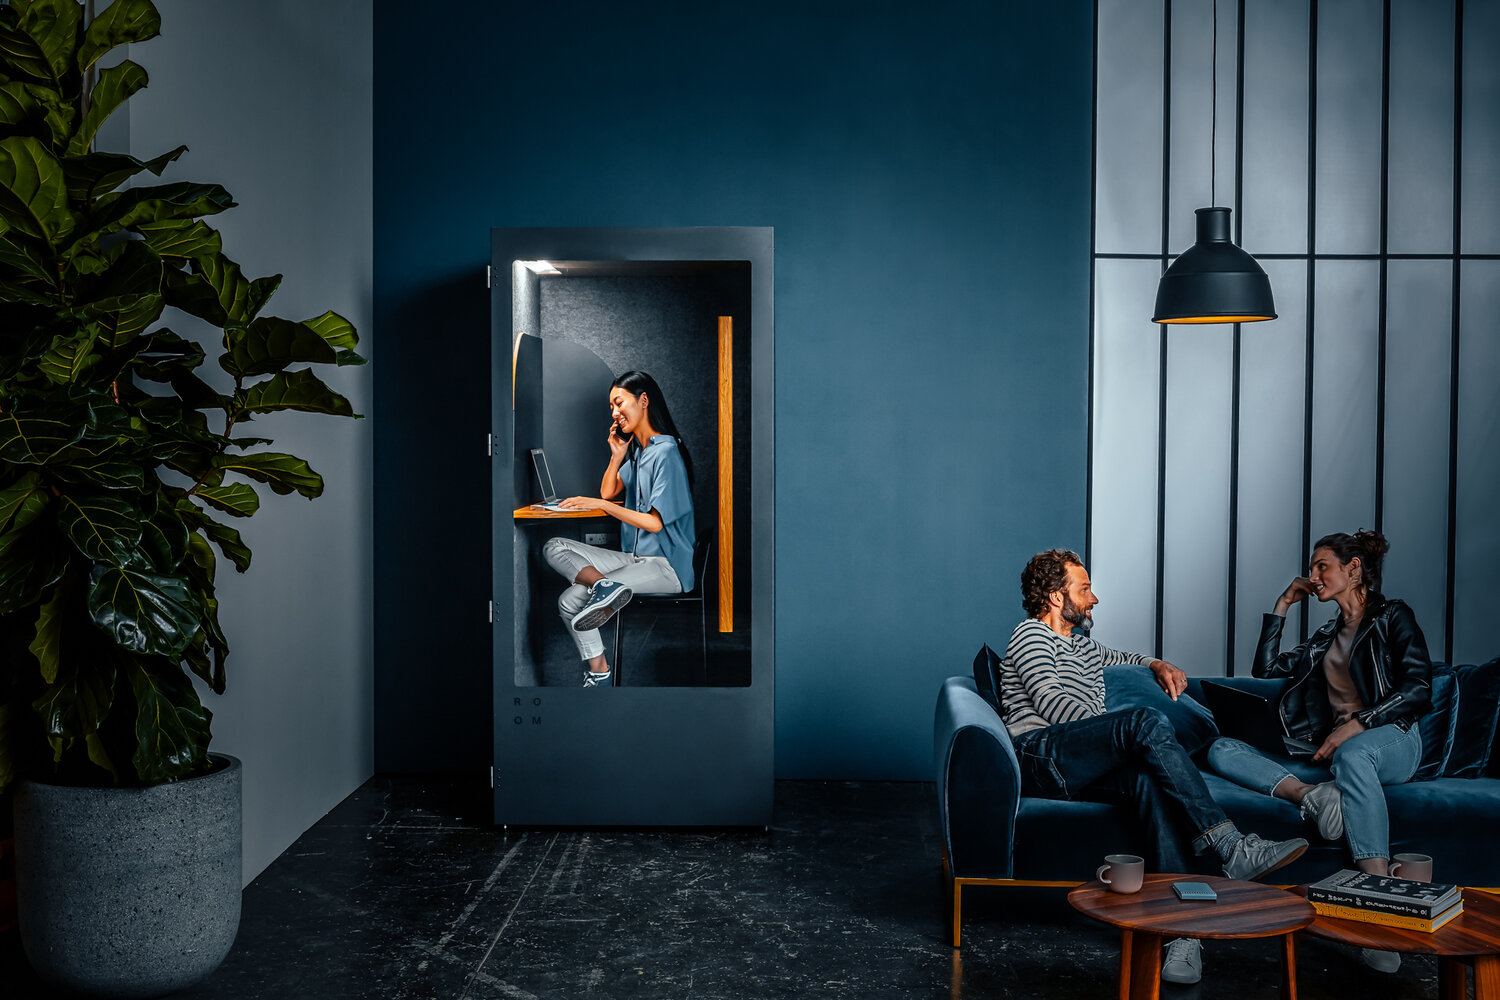 Space to hear yourself think: open plan environments need flexibility in order to suit different work habits